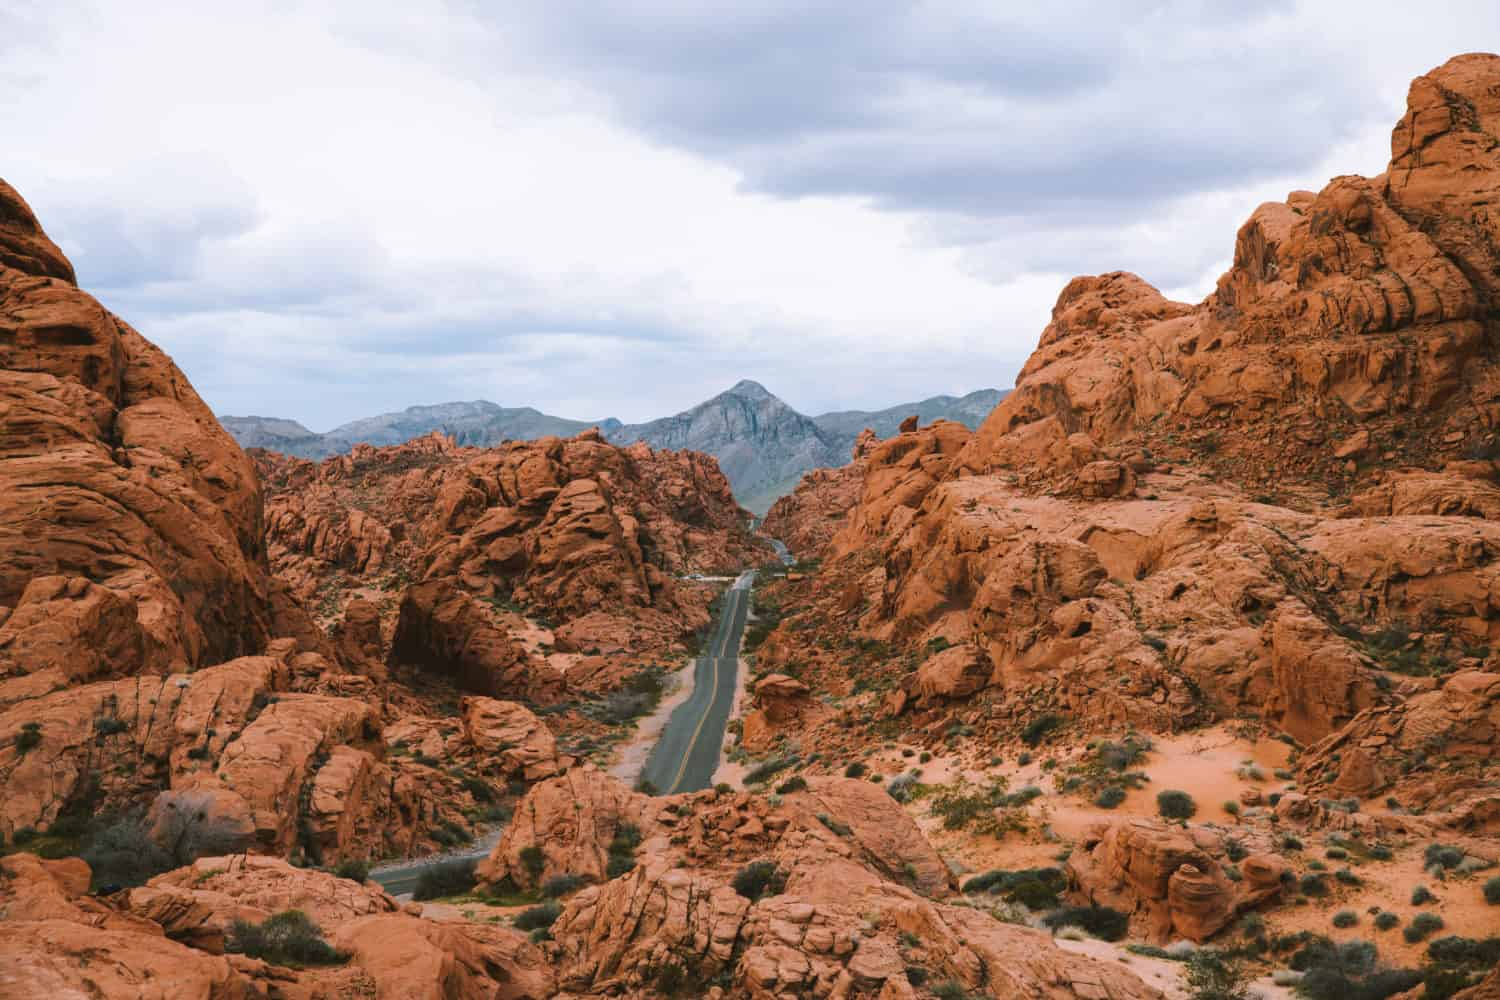 Valley of Fire State Park Mouse Tank Road - Southwest Road Trip Destination -TheMandagies.com